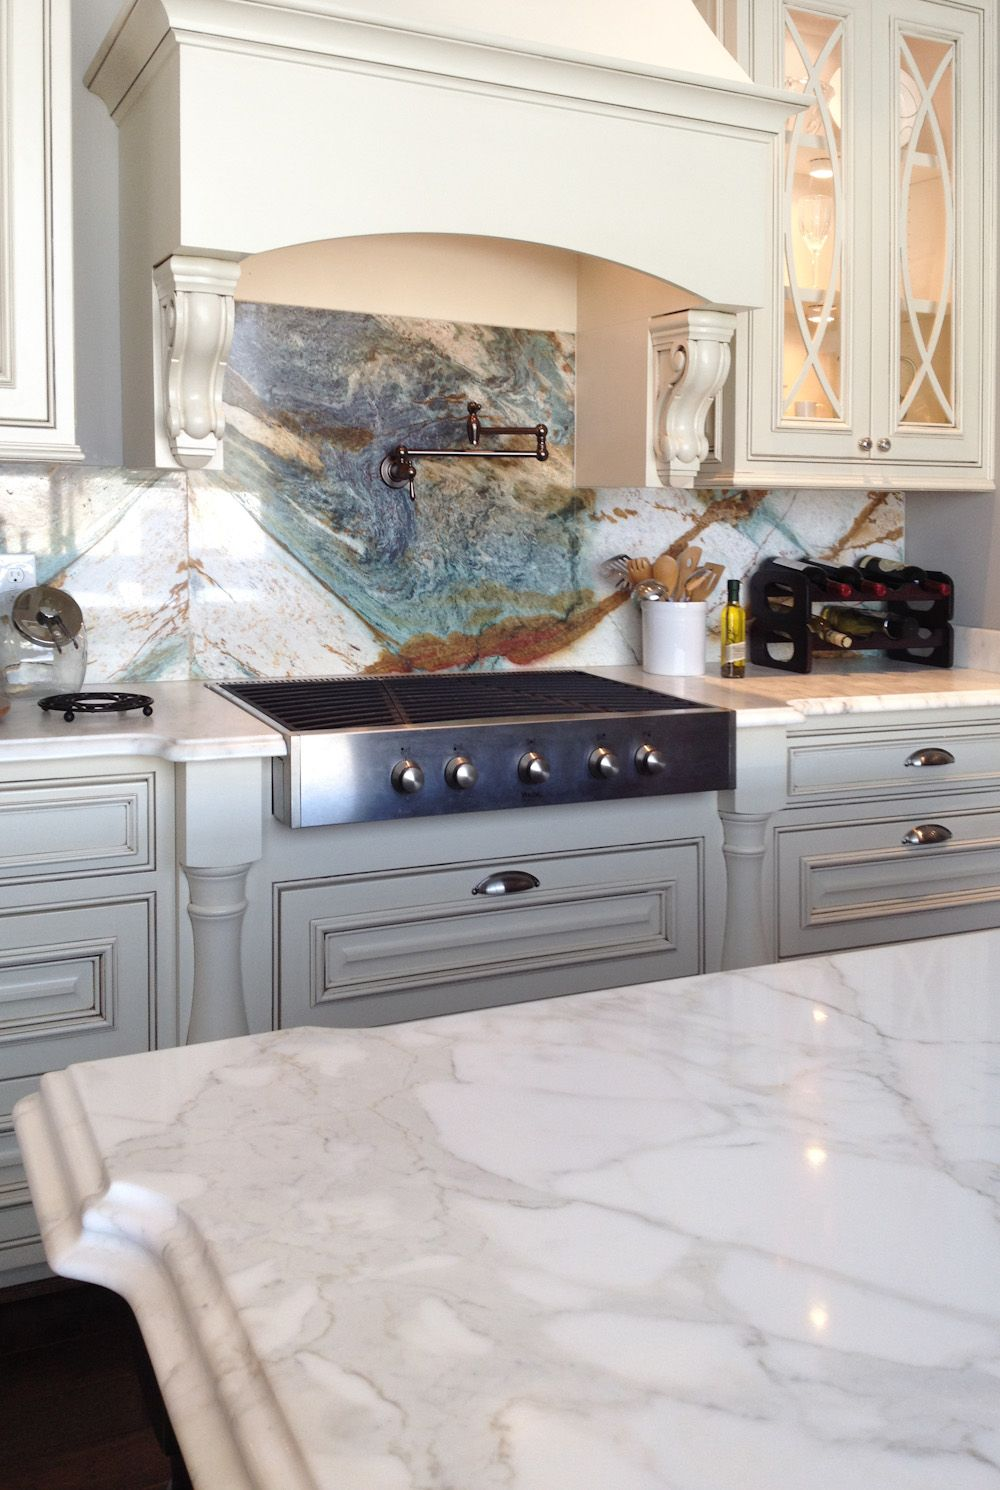 1000 images about marble like countertops on pinterest quartzite countertops quartz countertops and white quartz countertops